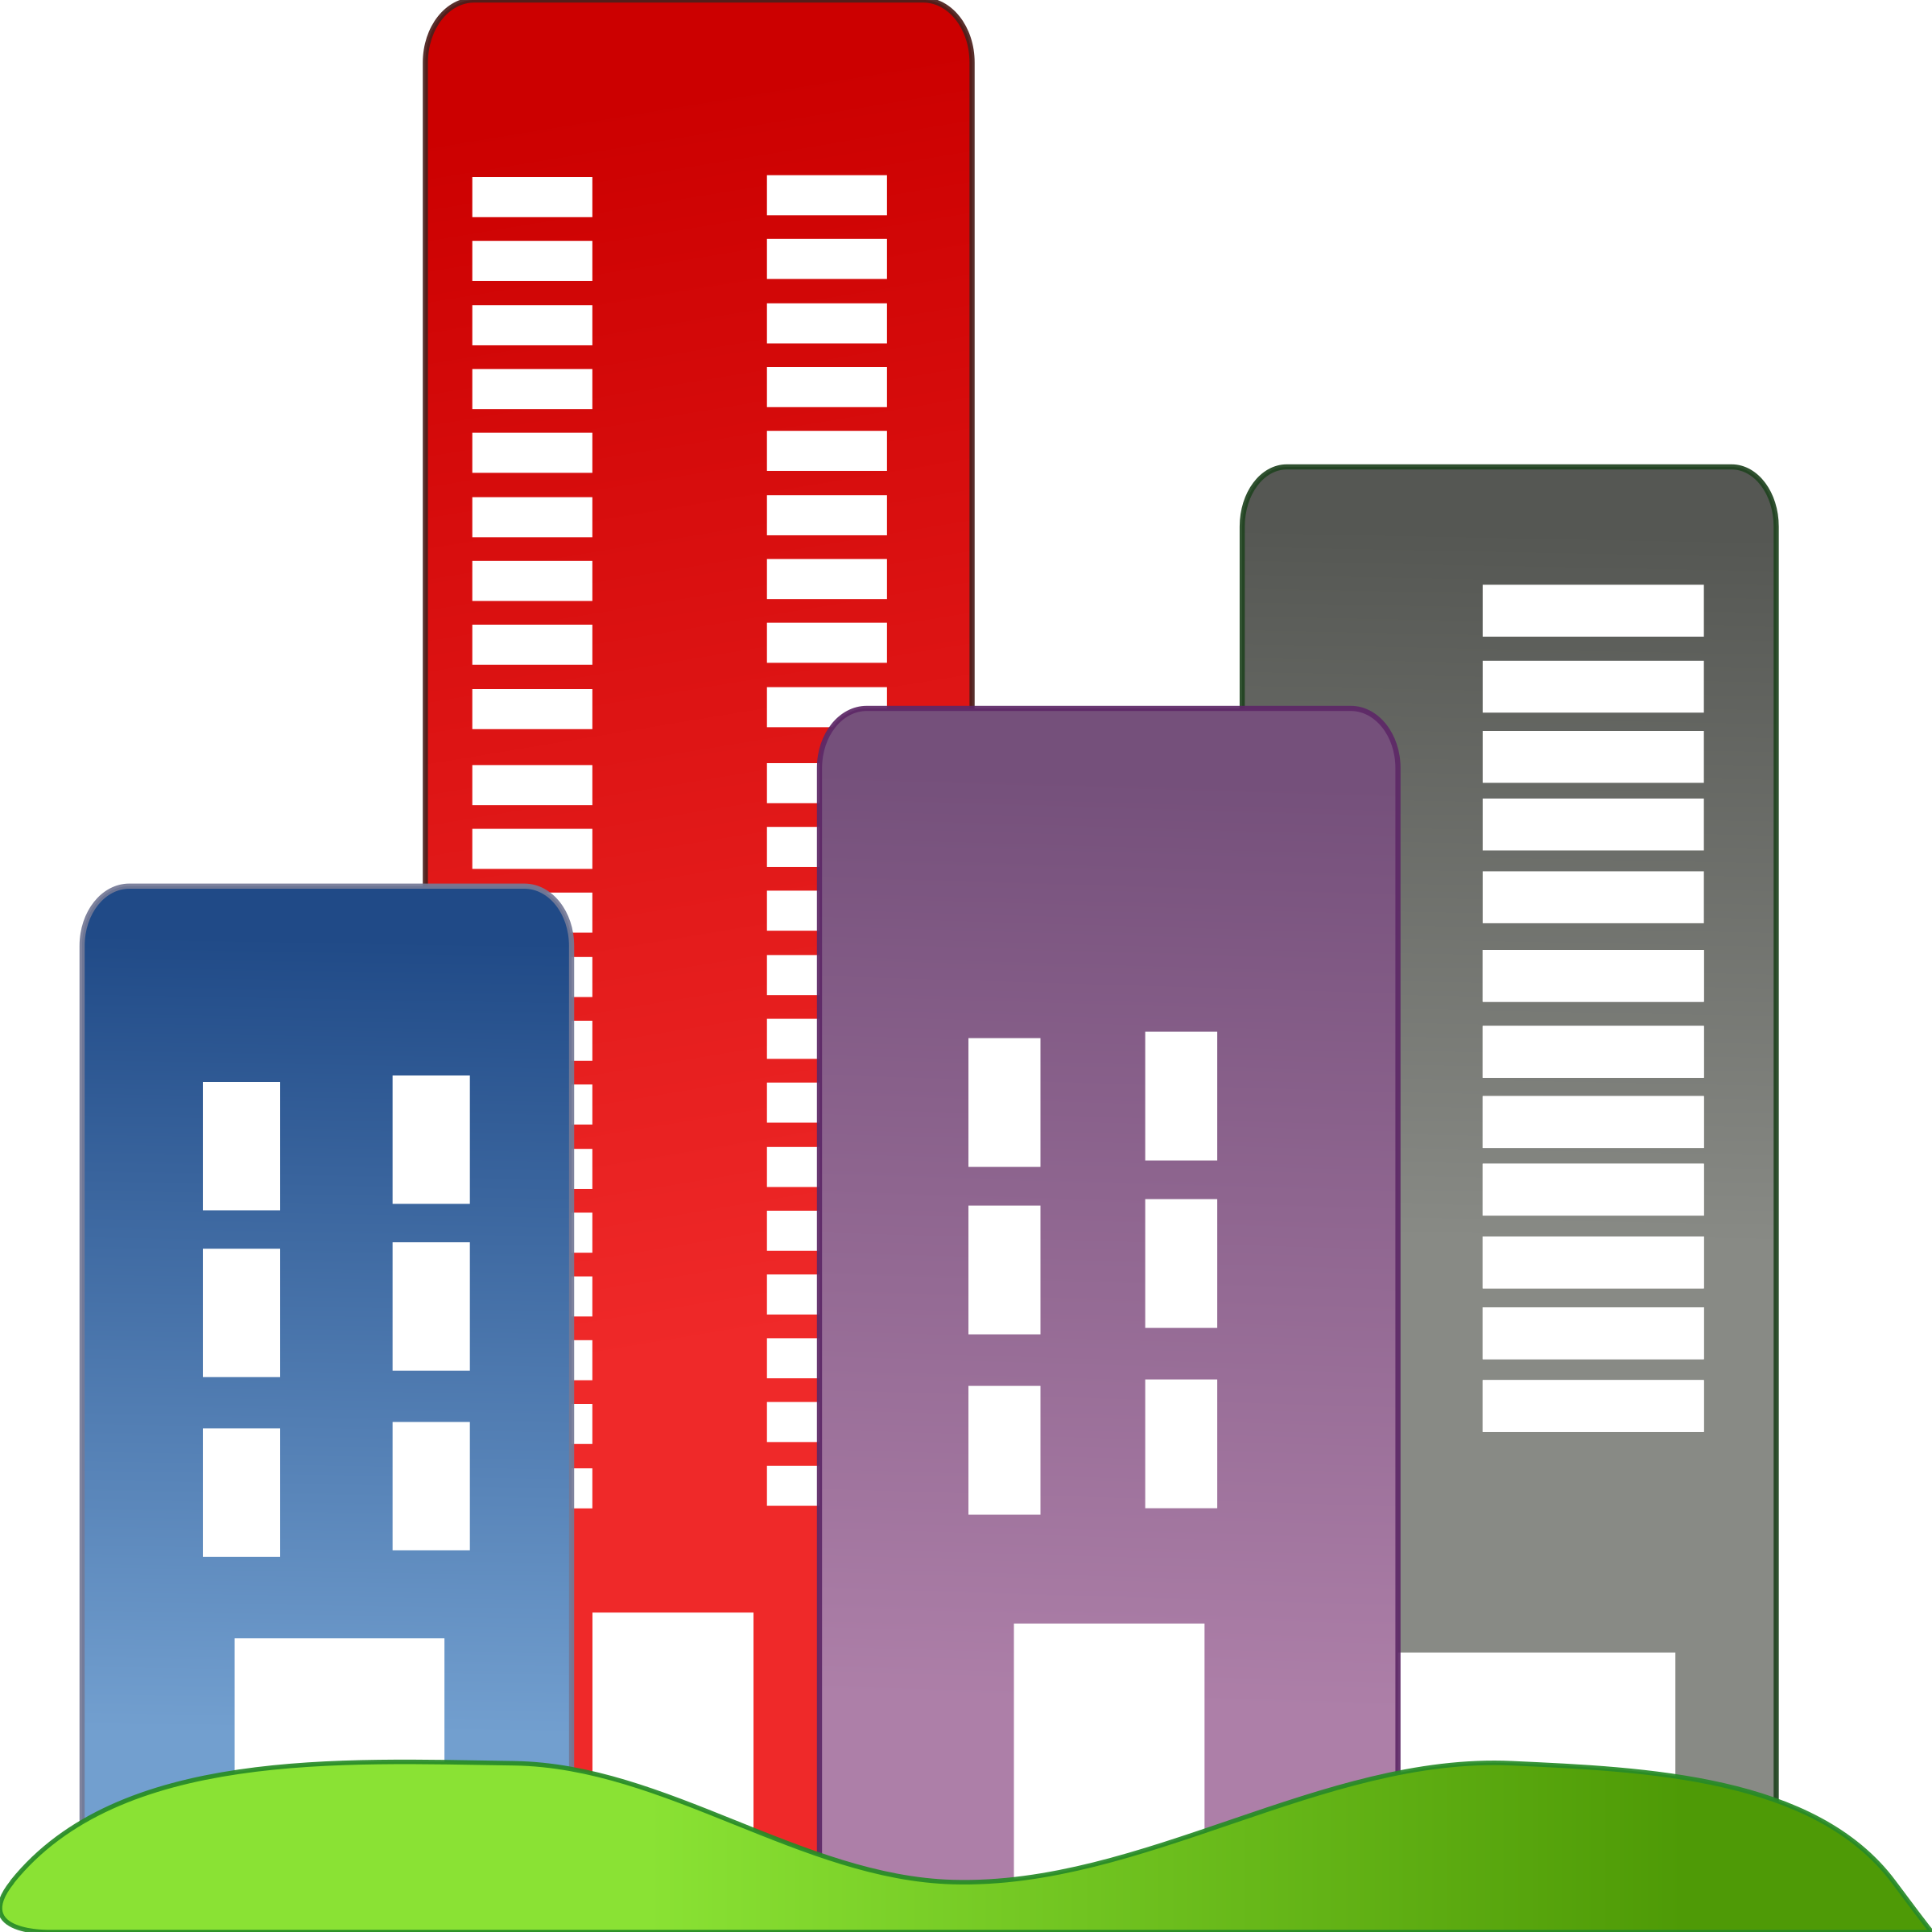 Building pencil and in. Buildings clipart transparent background